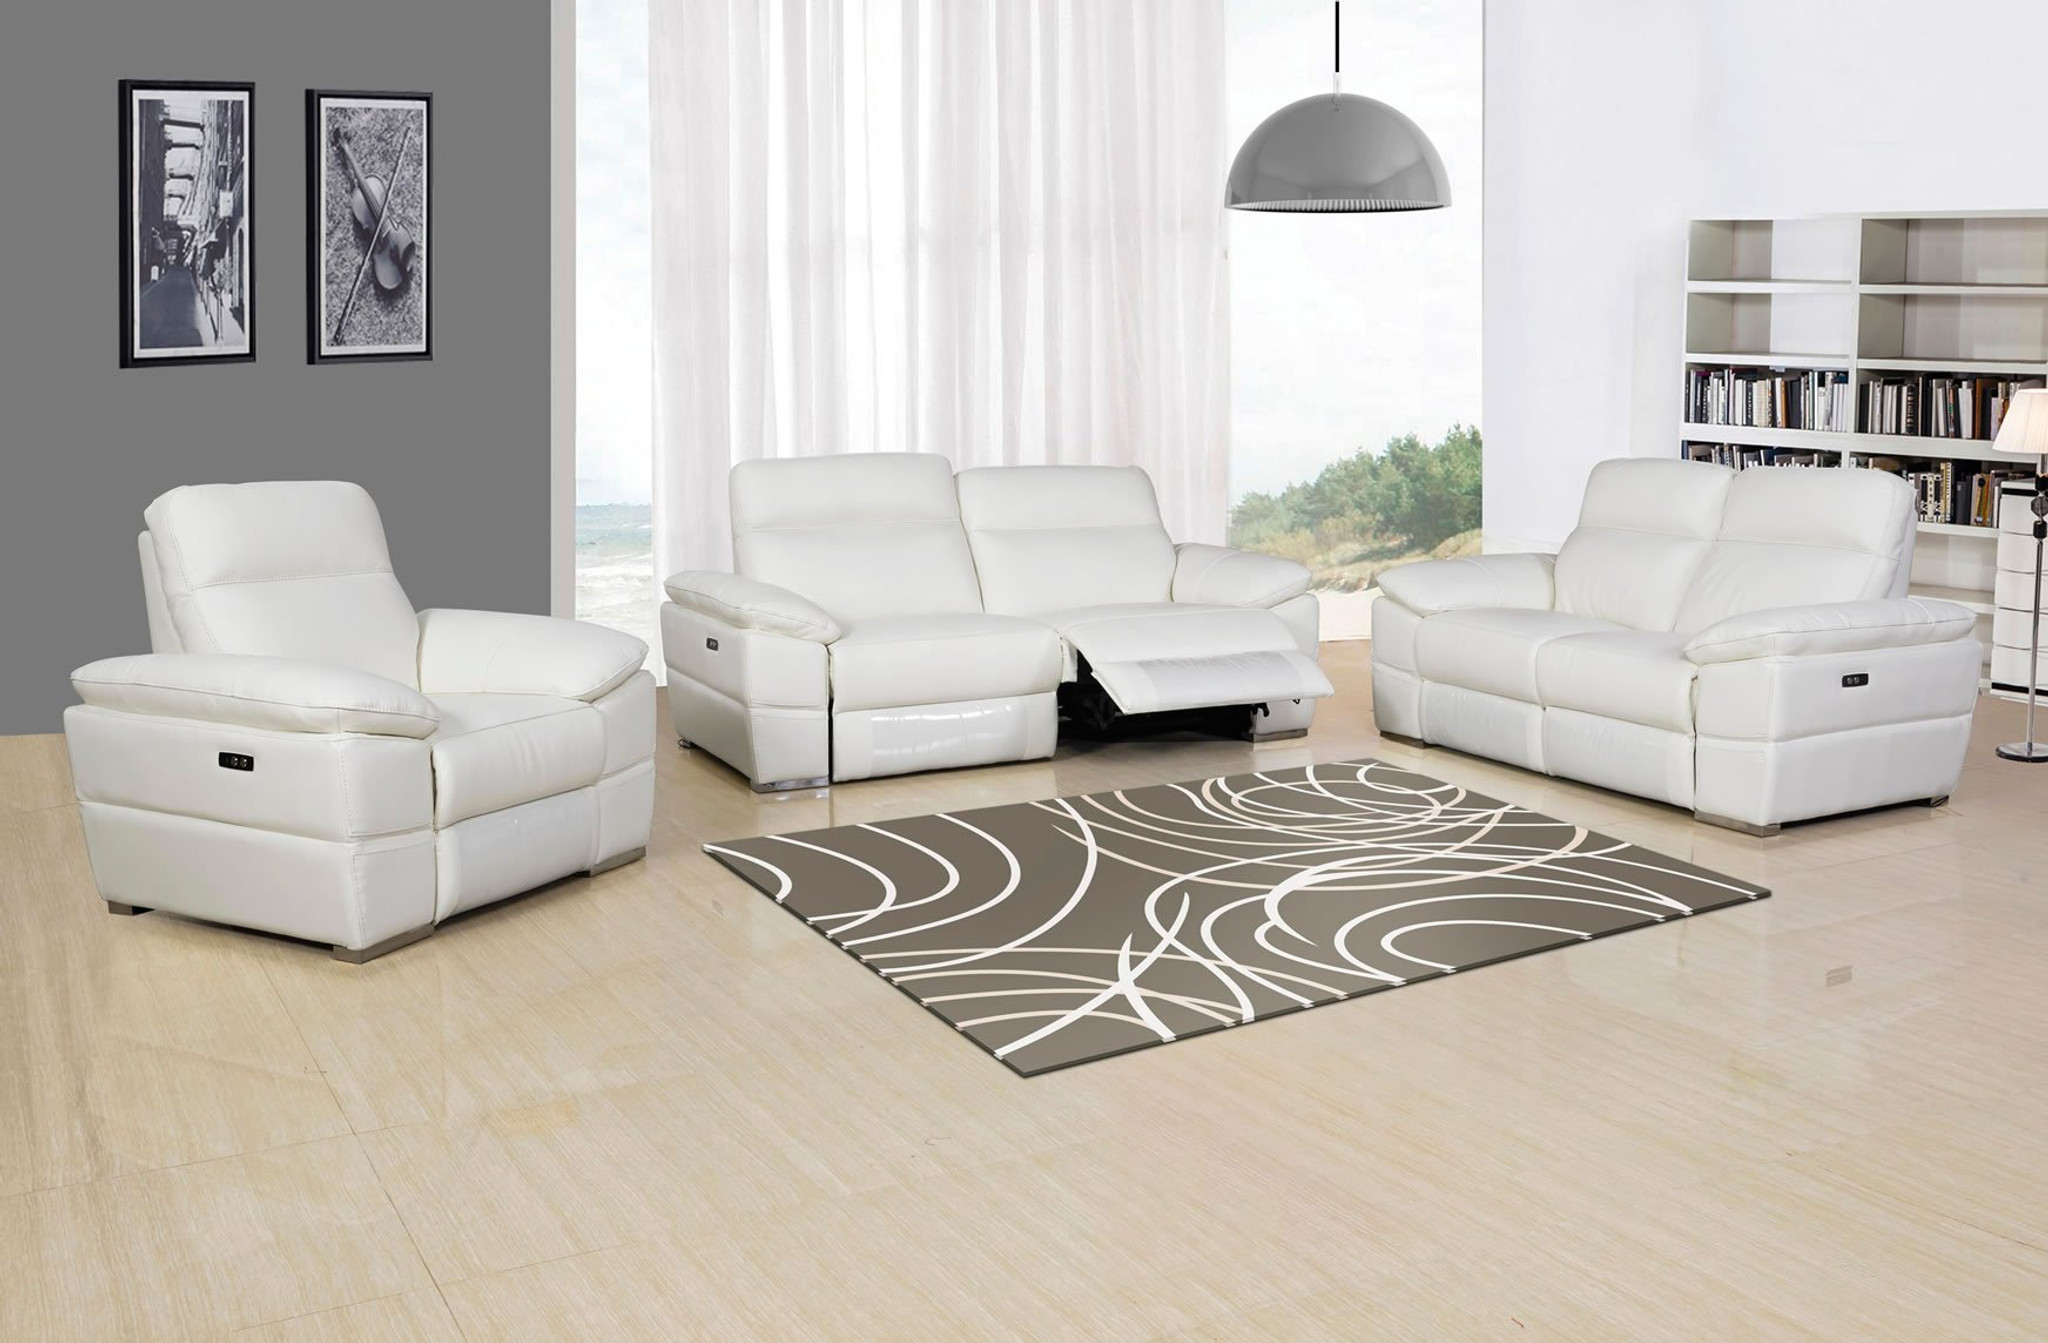 - RIVALDO TOP GRAIN LEATHER 2PCS POWER MOTION RECLINING SET IN WHITE